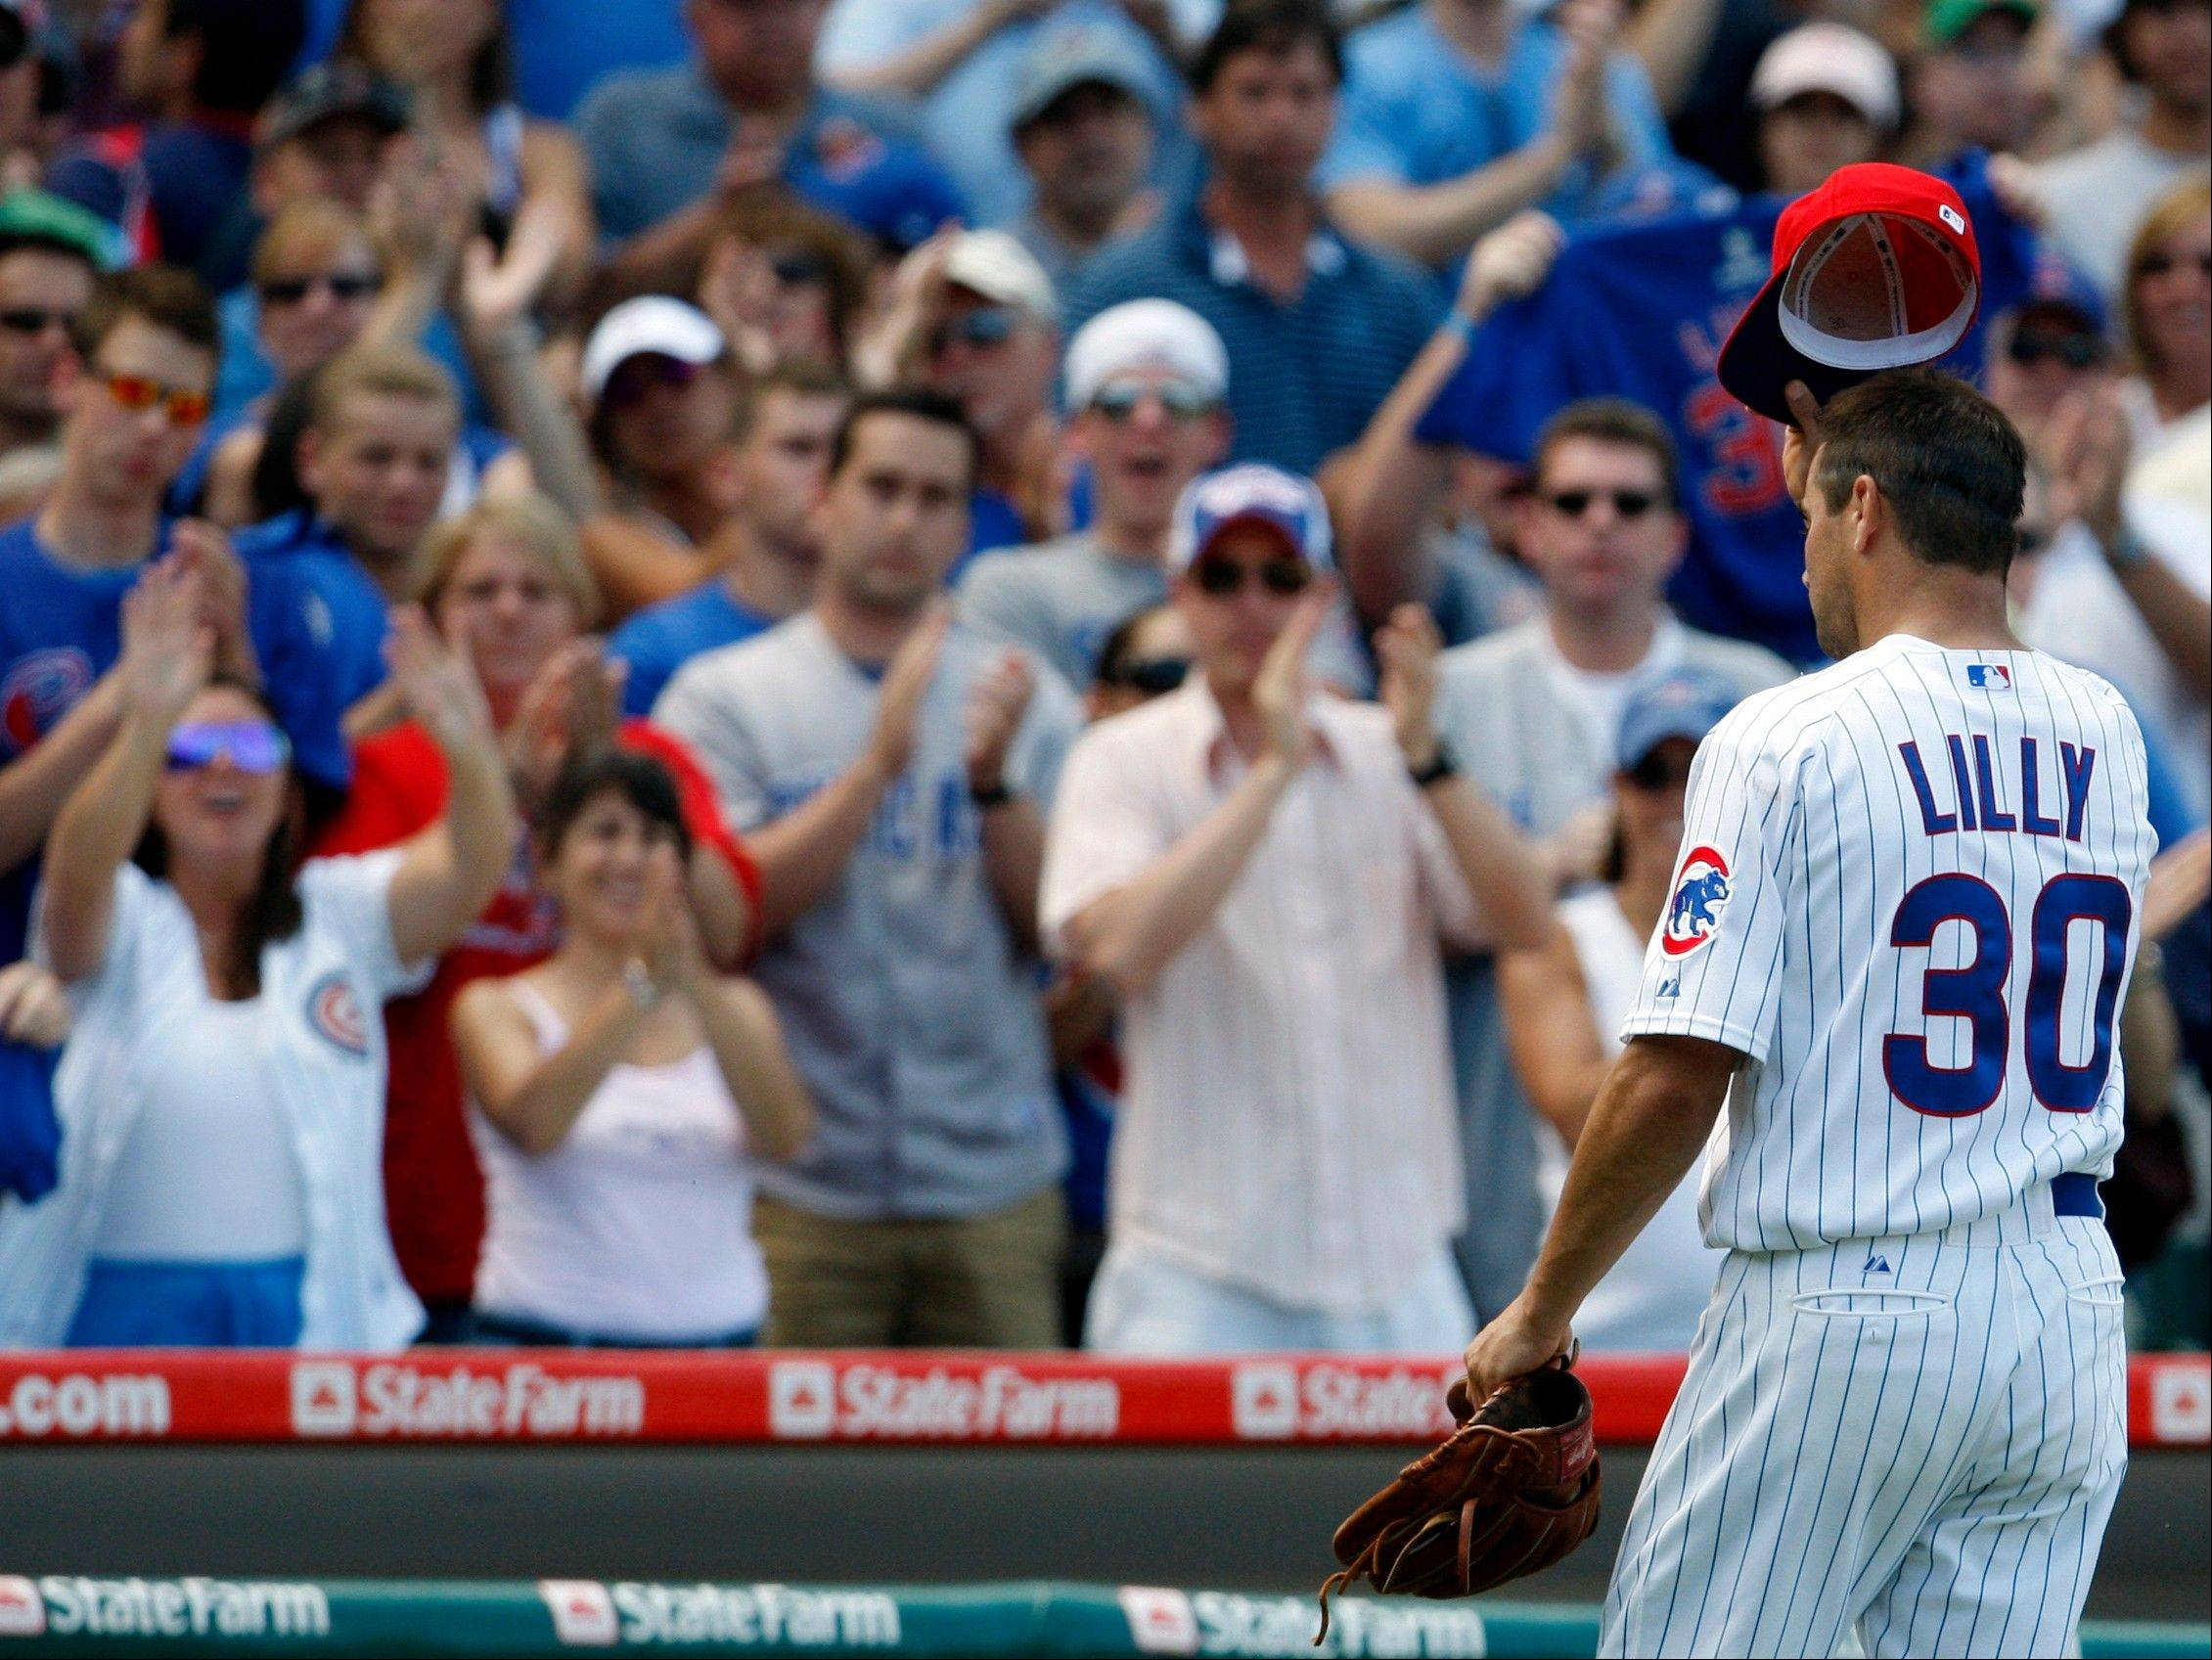 Chicago Cubs starter Ted Lilly tips his cap to the fans as he leaves the field during the seventh inning of a baseball game against the Milwaukee Brewers. Lilly announced his retirement from baseball on Friday because of a troublesome shoulder and back.